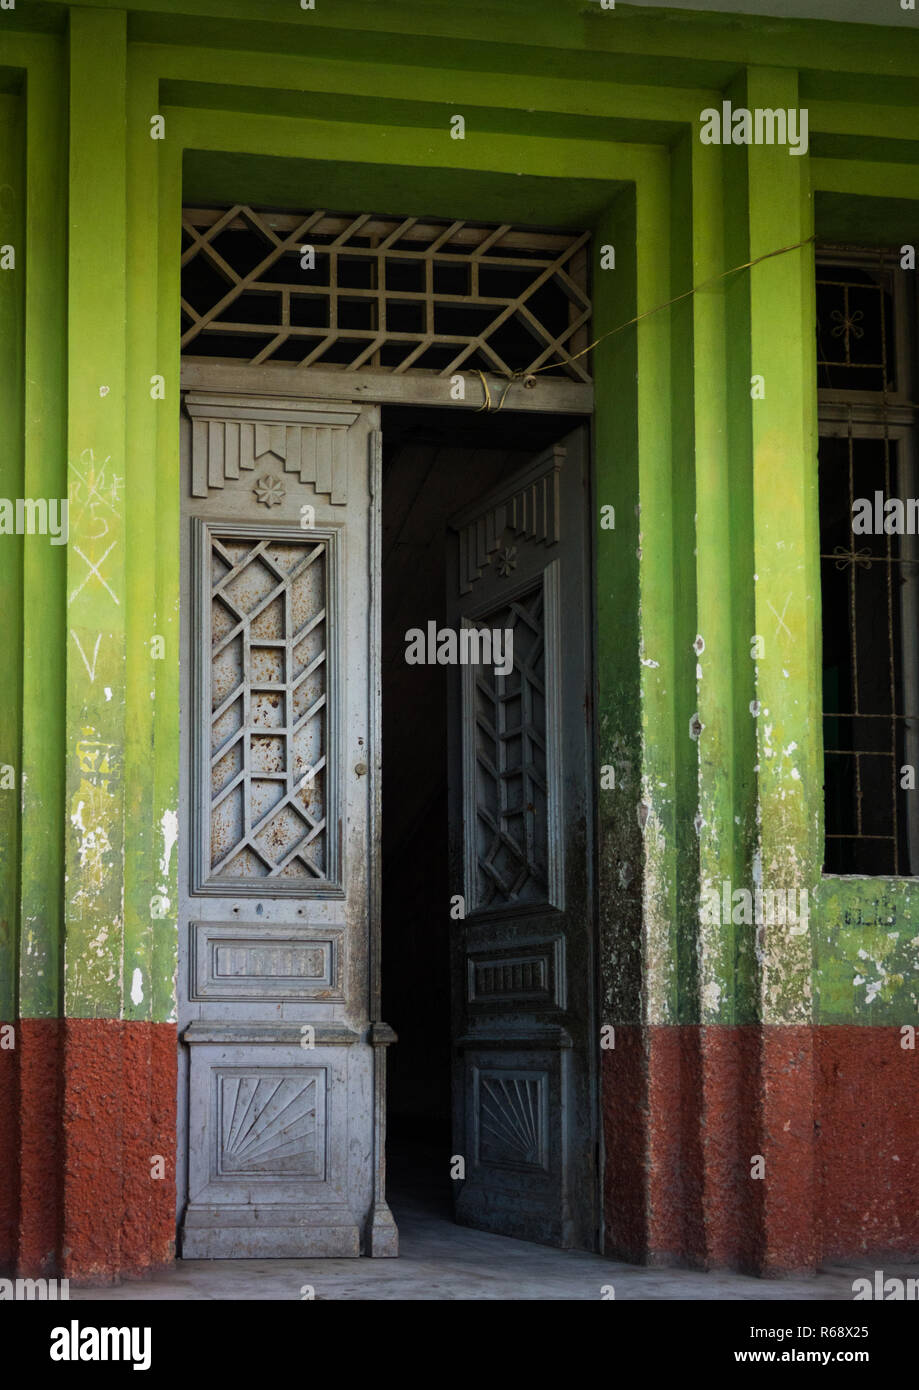 Old portuguese colonial building, Namibe Province, Namibe, Angola - Stock Image